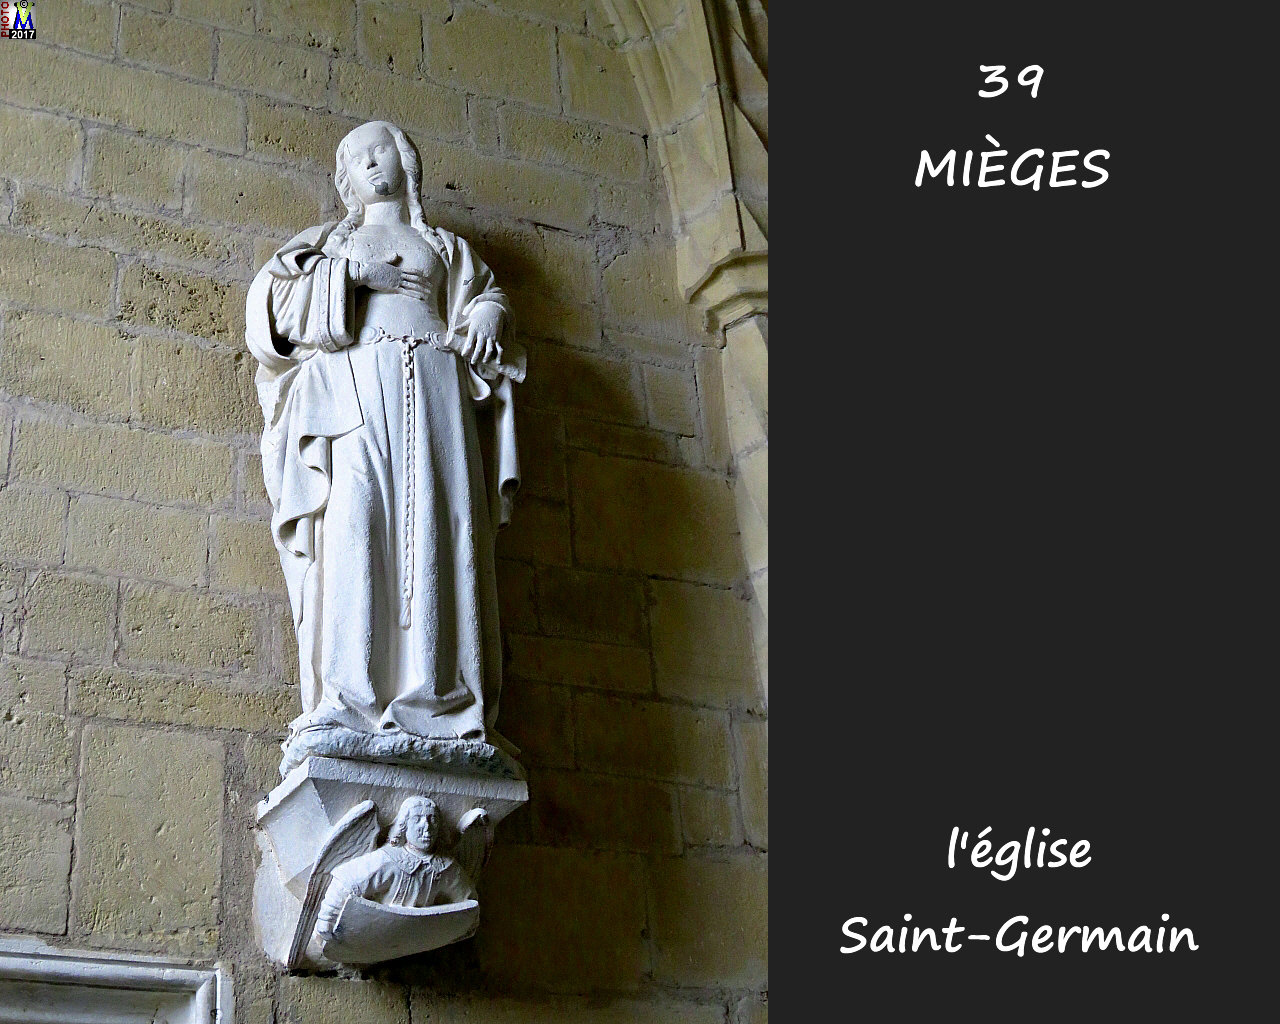 39MIEGES_eglise_270.jpg